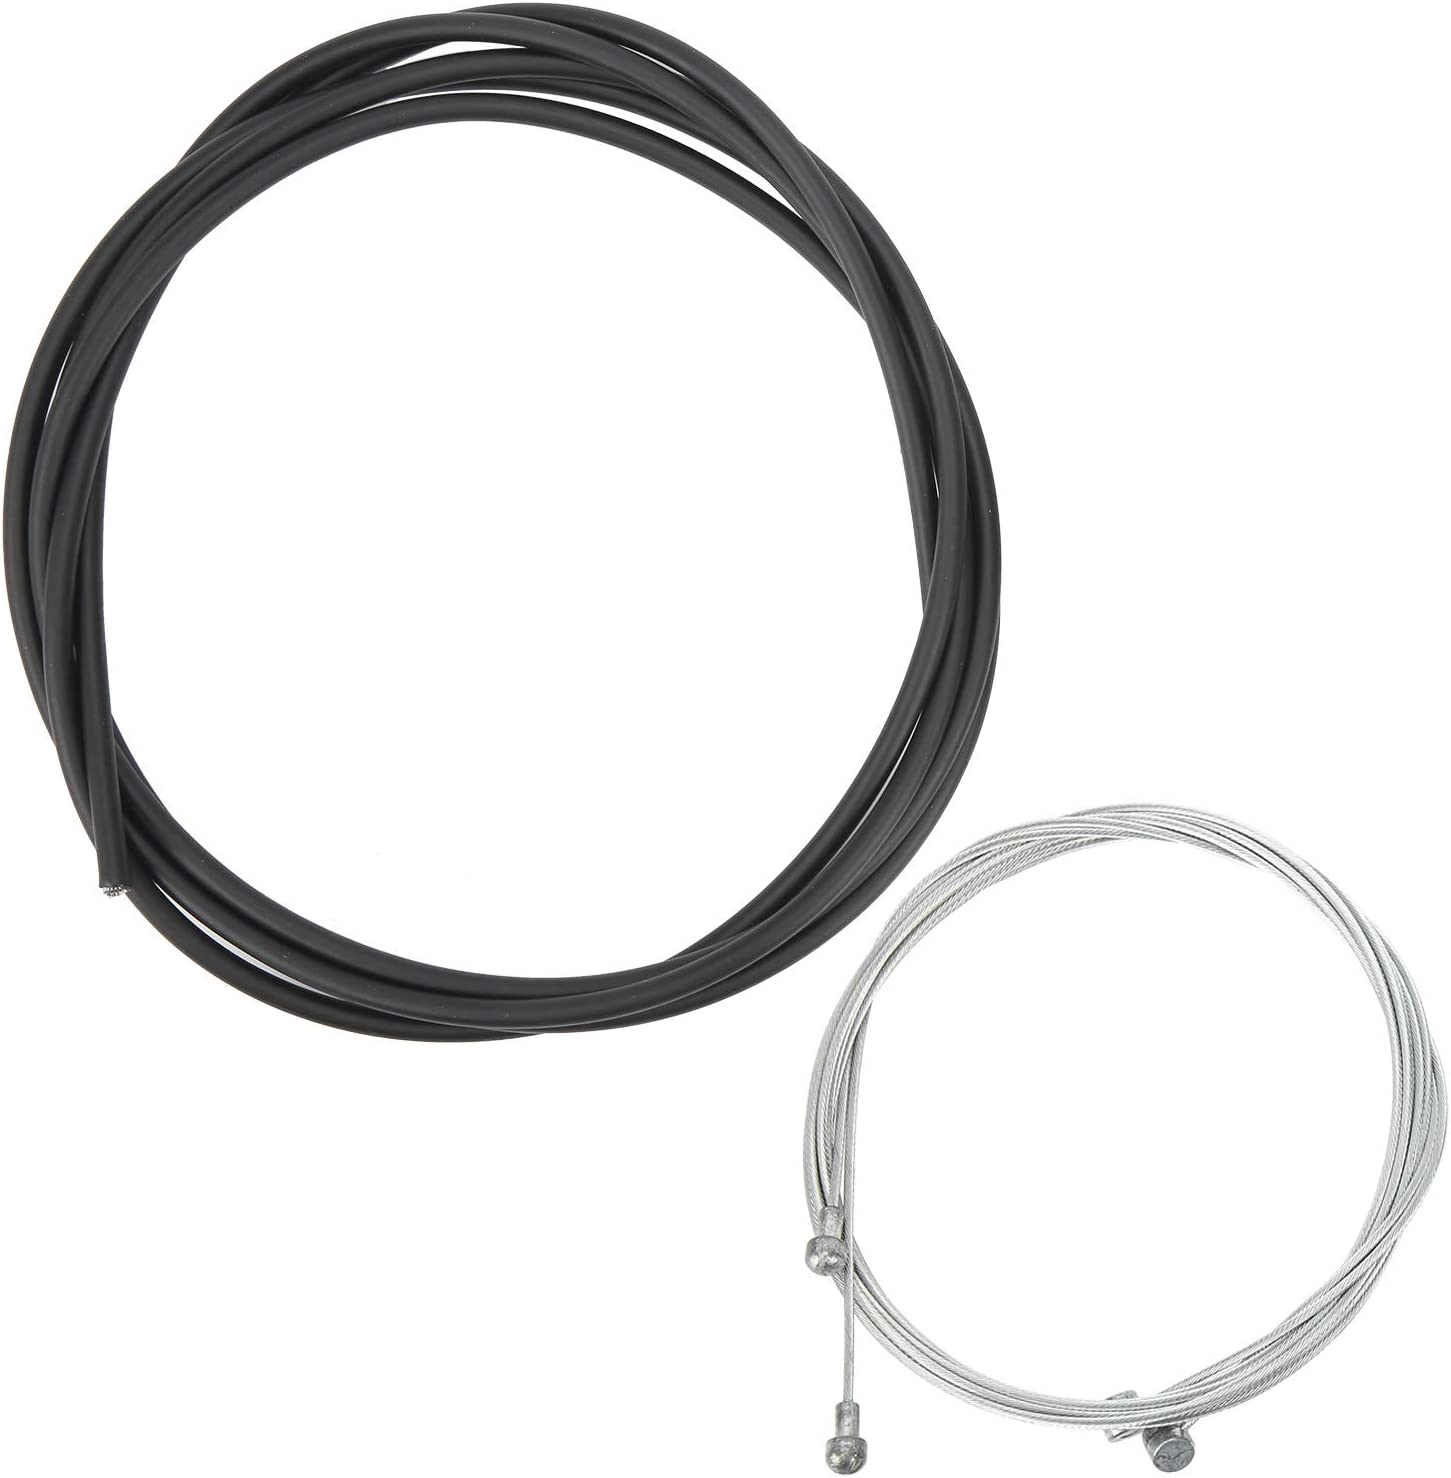 01 Bicycle Brake Cable Low shop Compression Ratio Fees free!! Bi Stainless Steel